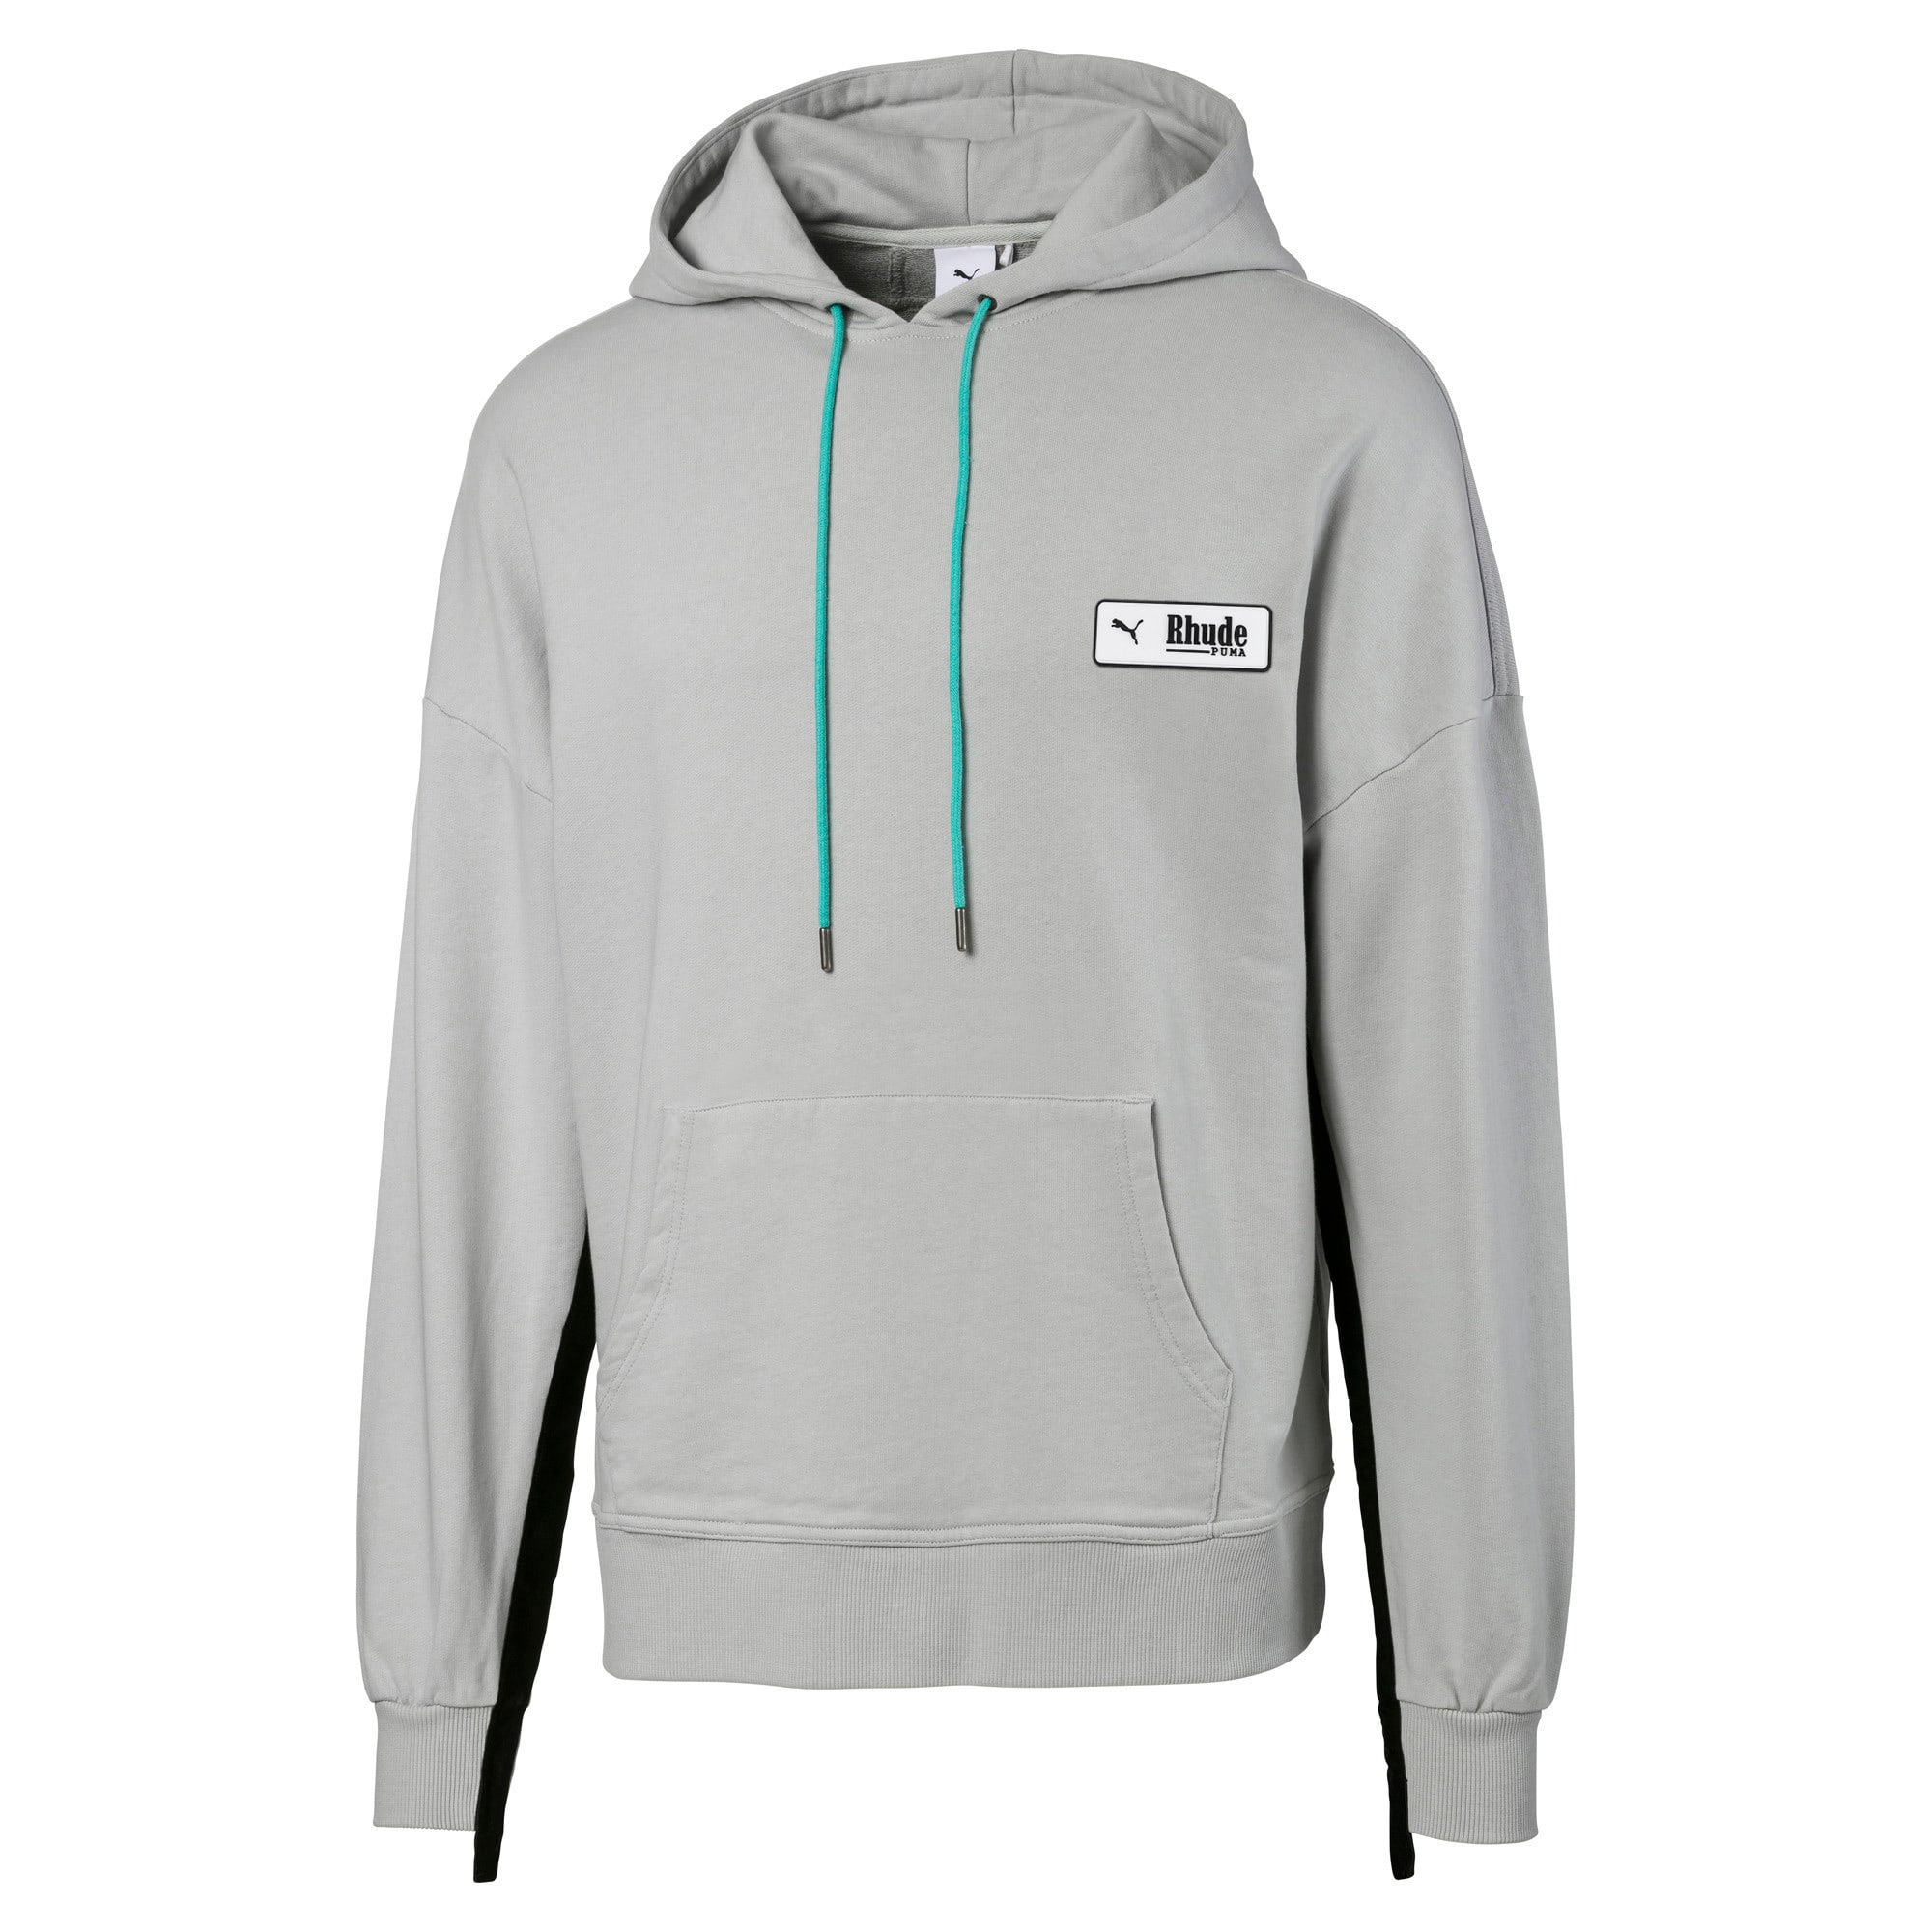 Thumbnail 2 of PUMA x RHUDE Men's Hoodie, Gray Violet, medium